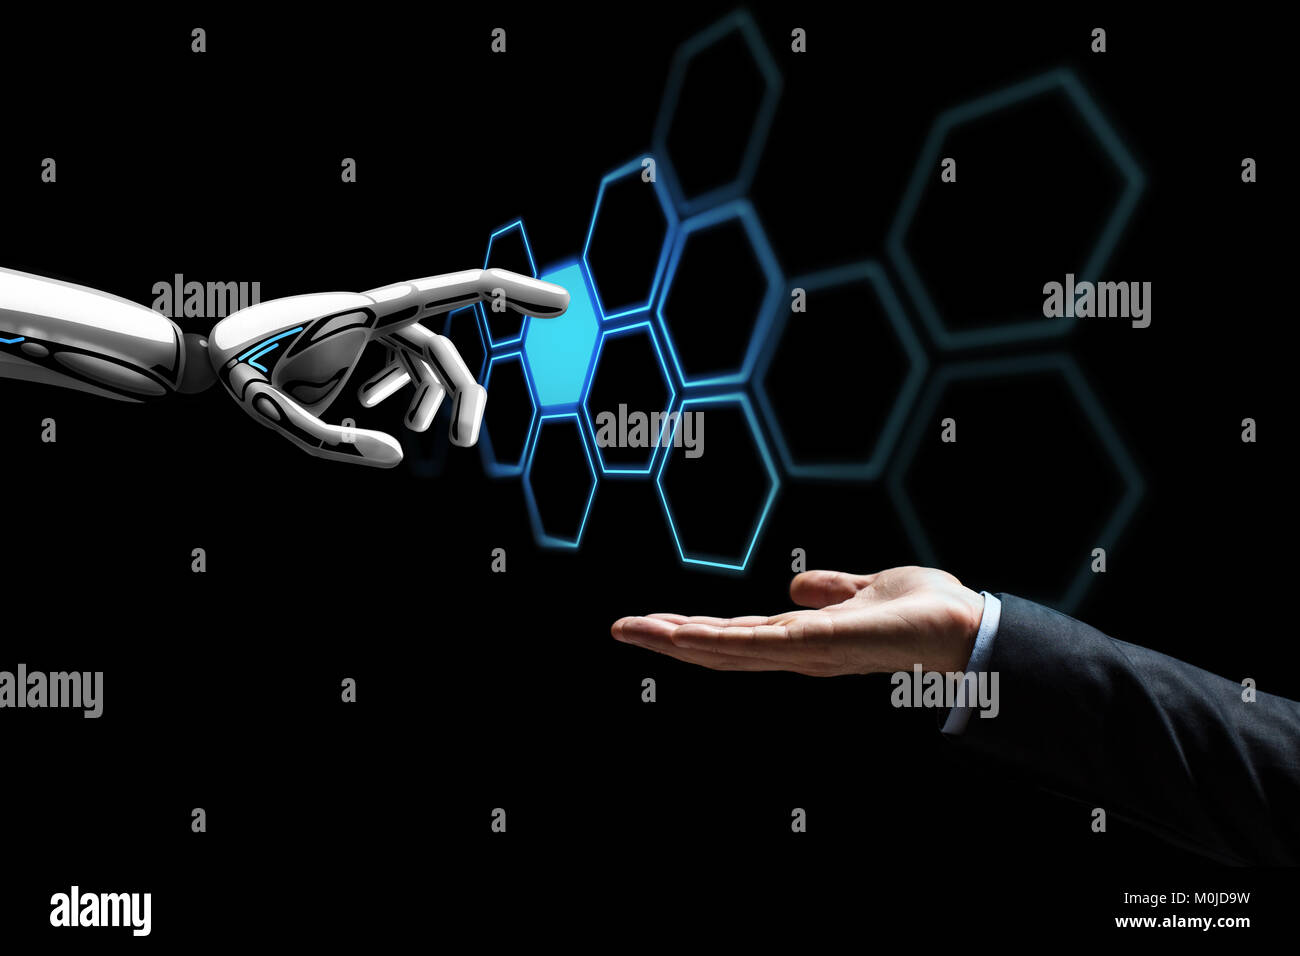 human hand and robot touching network hologram - Stock Image